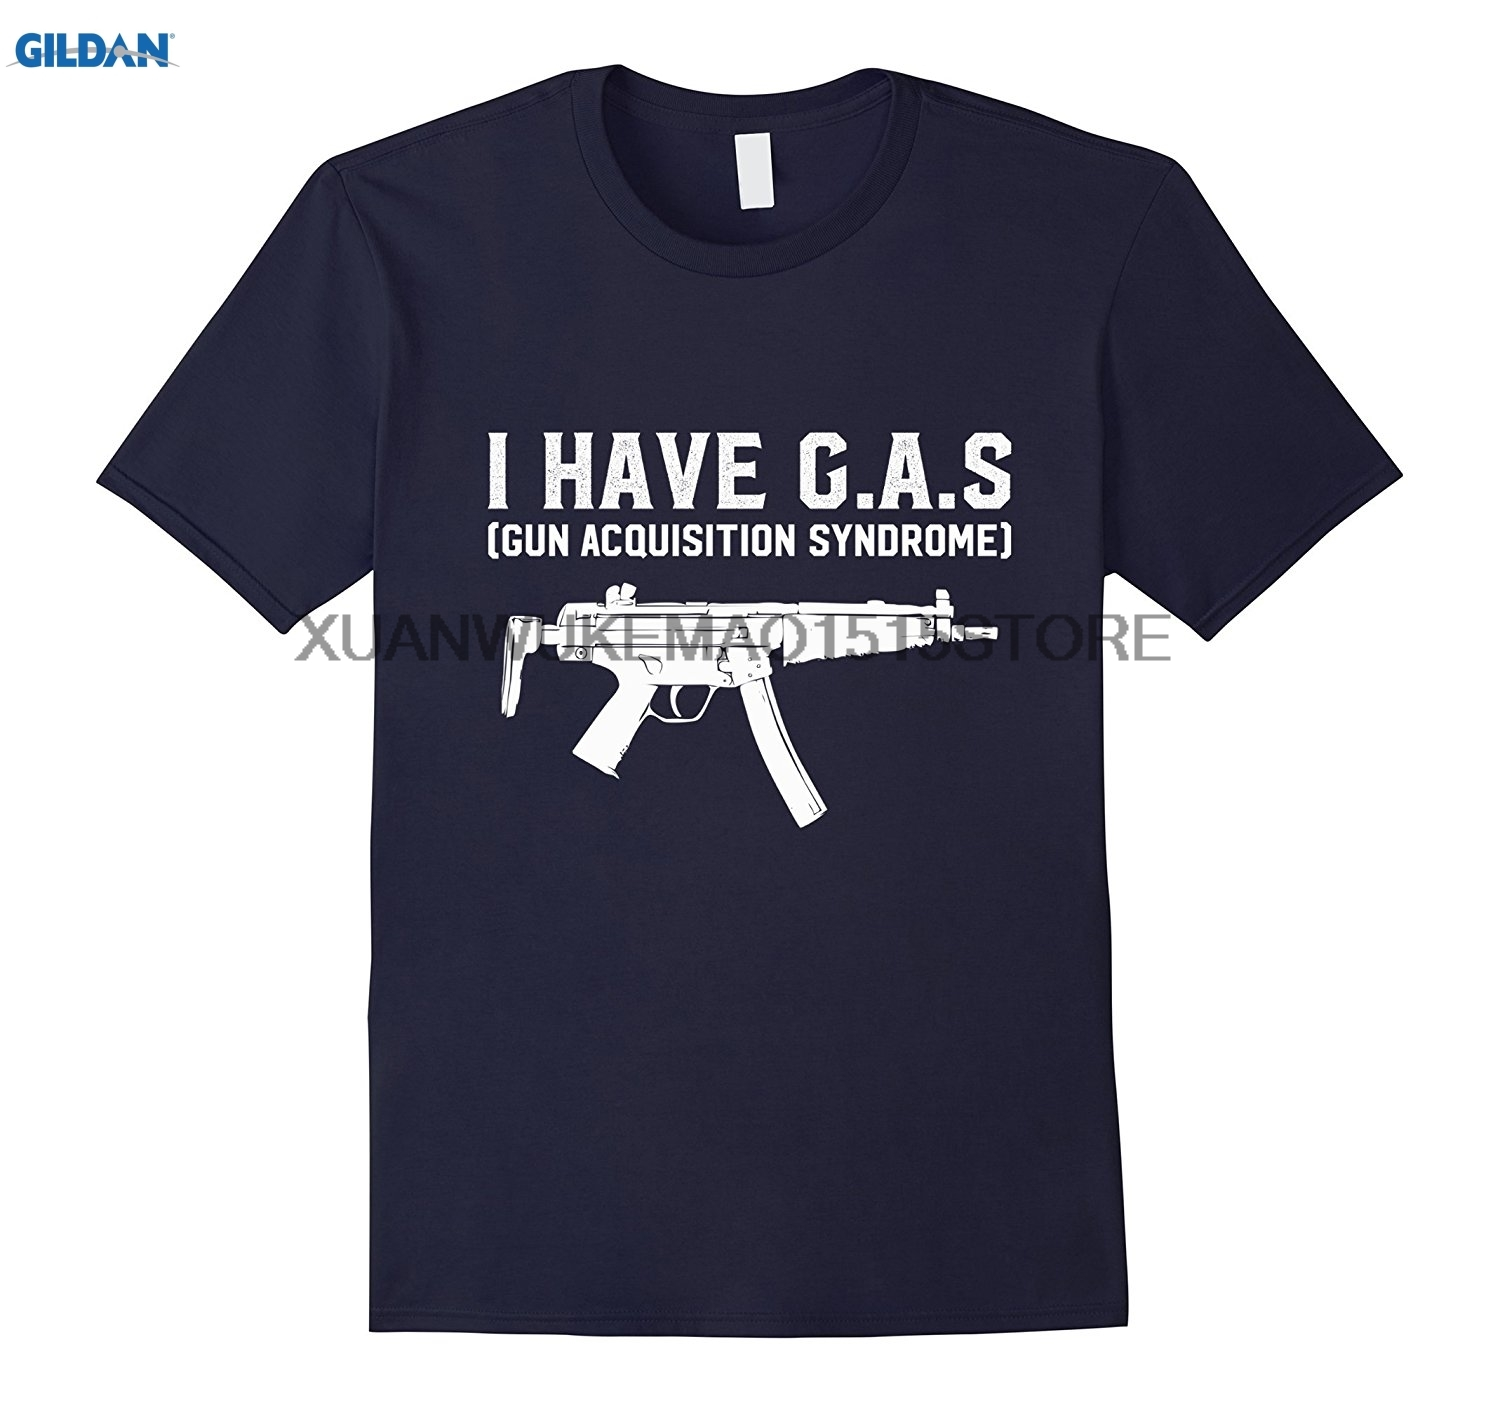 GILDAN 100% cotton O-neck printed T-shirt I Have GAS Gun Acquisition Syndrome Funny Pro Weapon T-Shirt